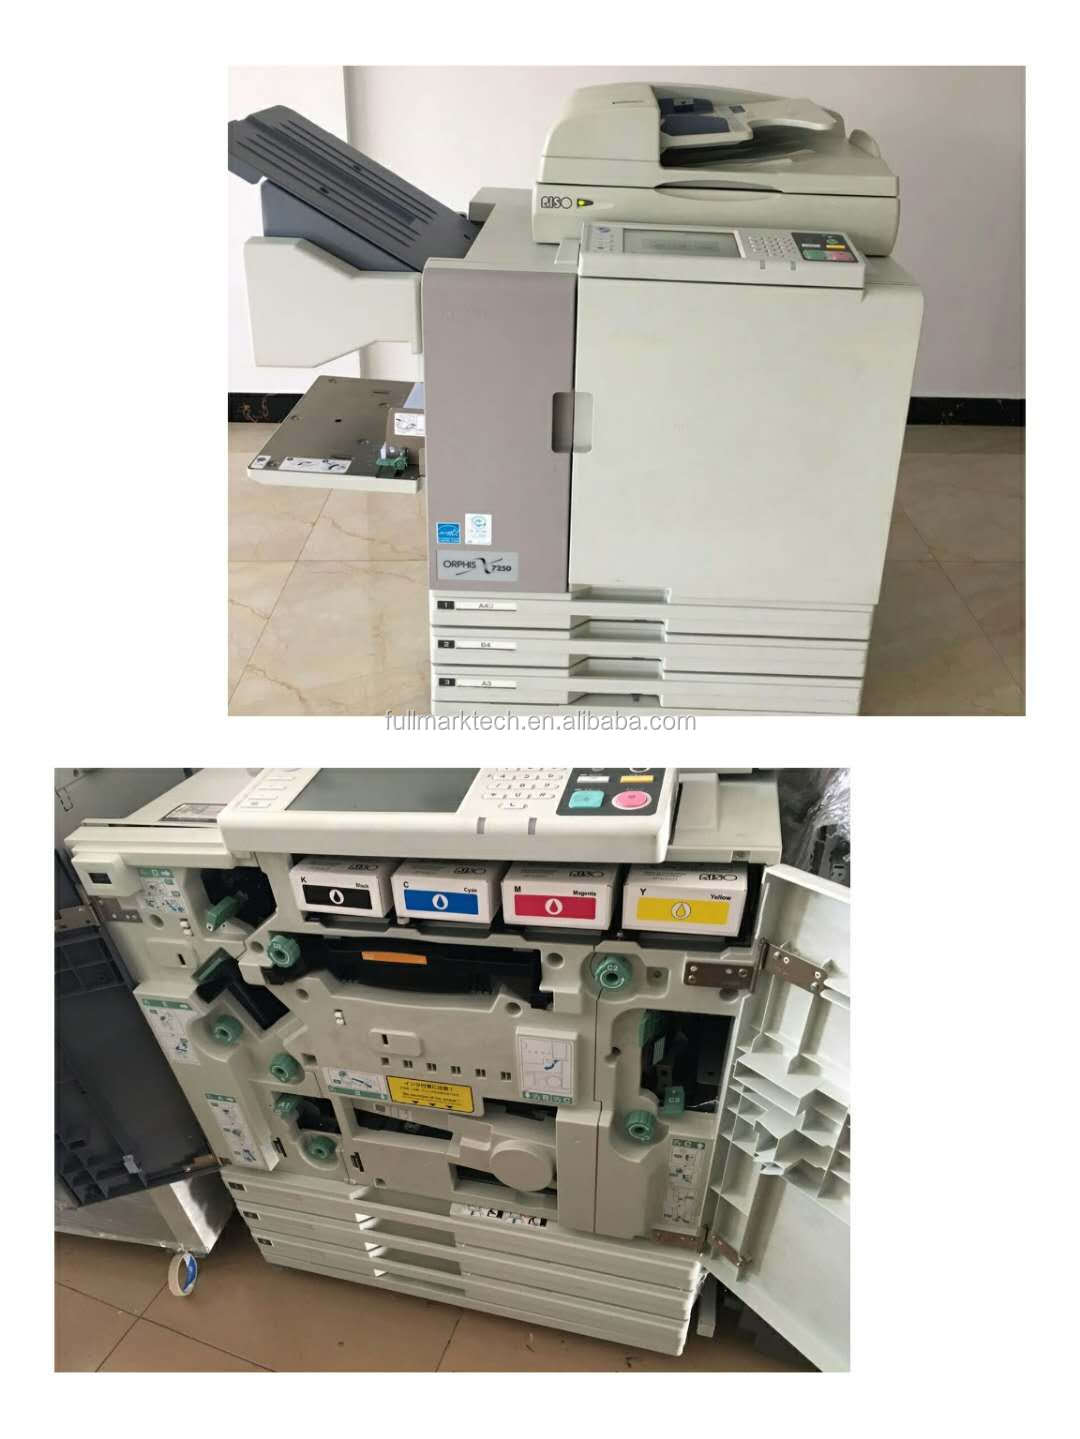 used risos comcolor 7150/7250 color inkjet printer for risos printing